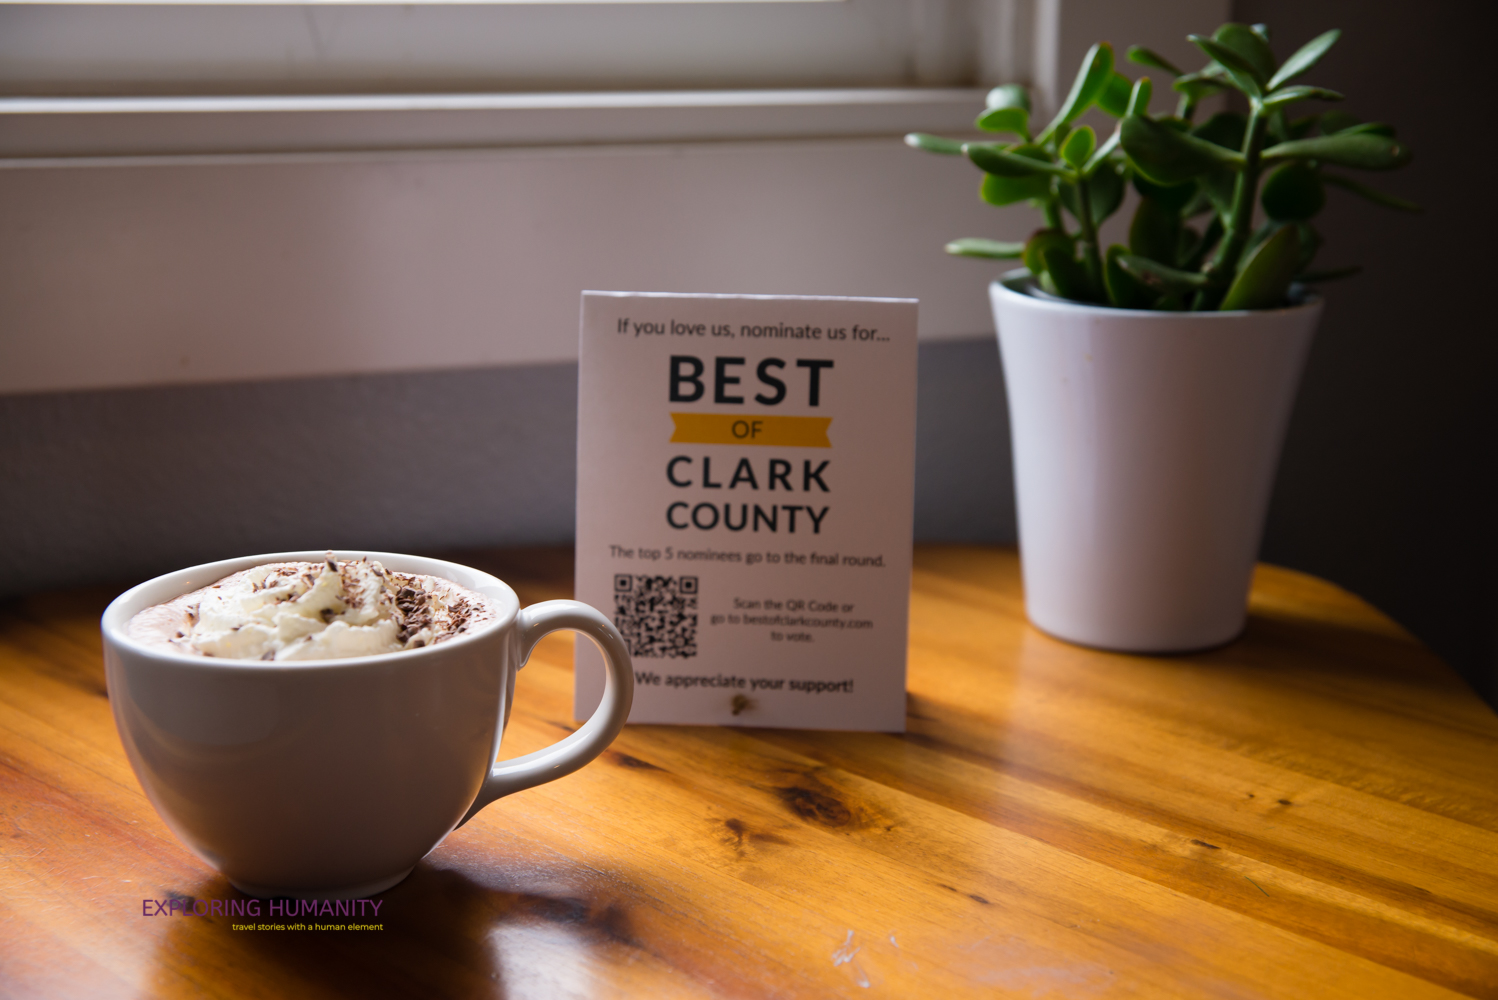 Hidden River Roasters is in the running for being nominated for Best of Clark County.